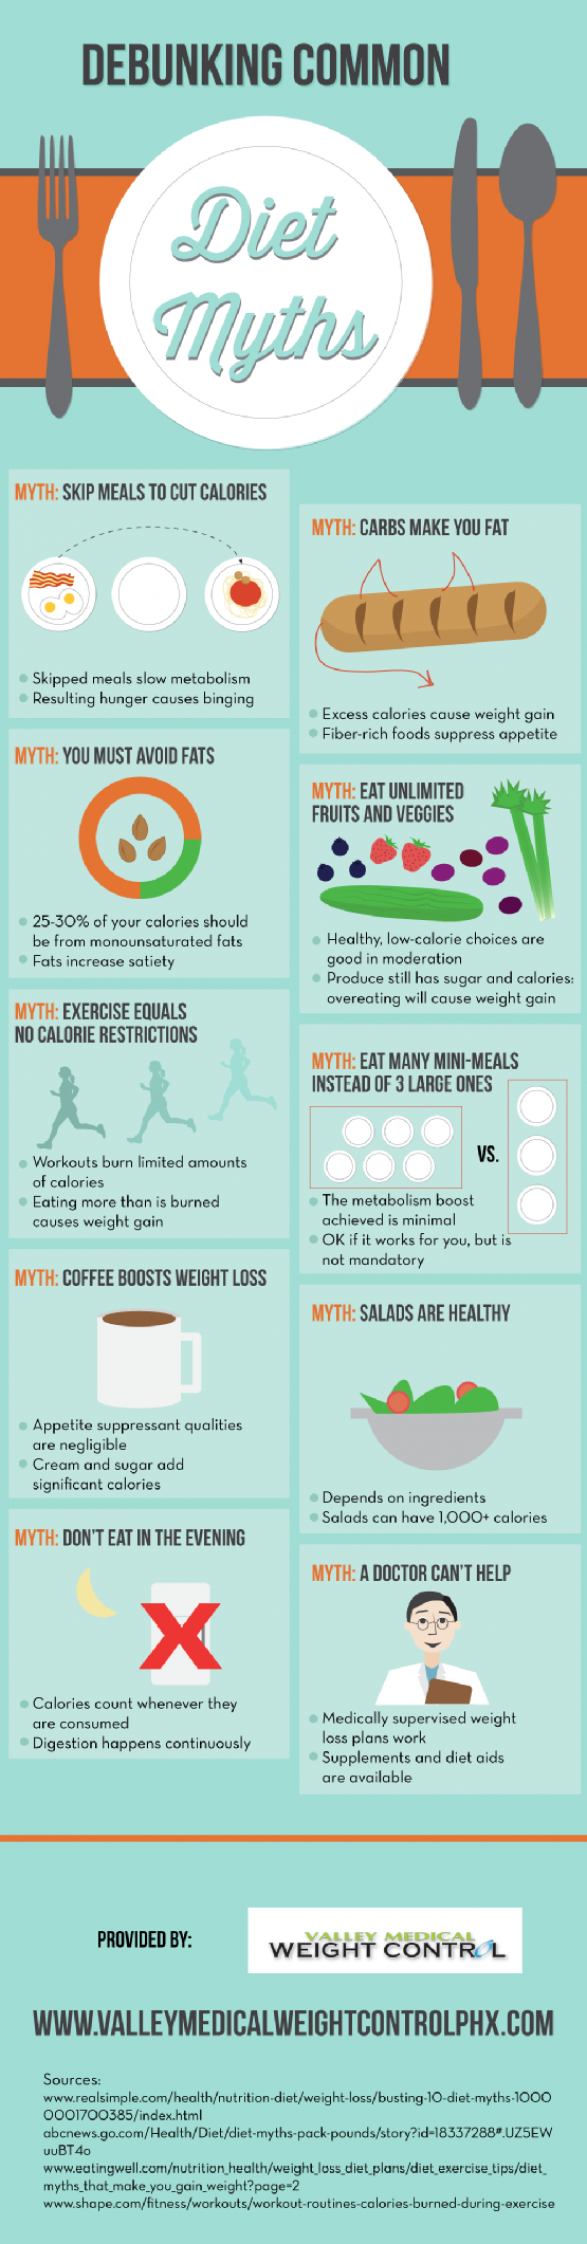 Debunking Common Diet Myths